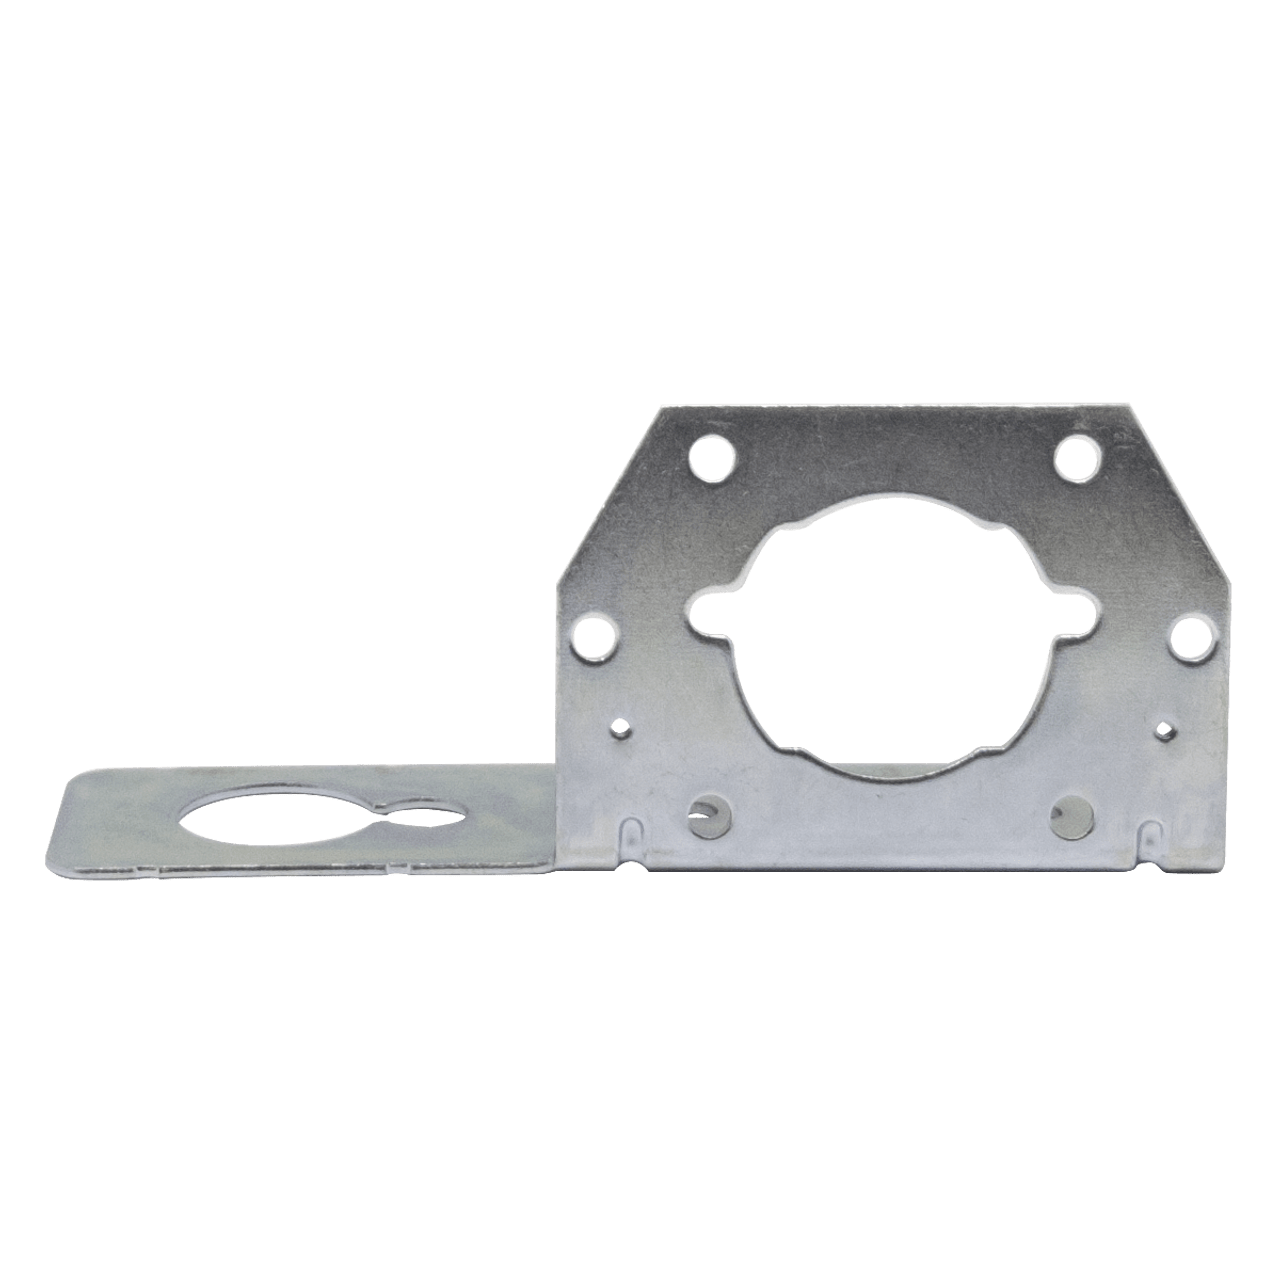 95D --- Mounting Bracket for 4-Way and 6-Way Round Connectors